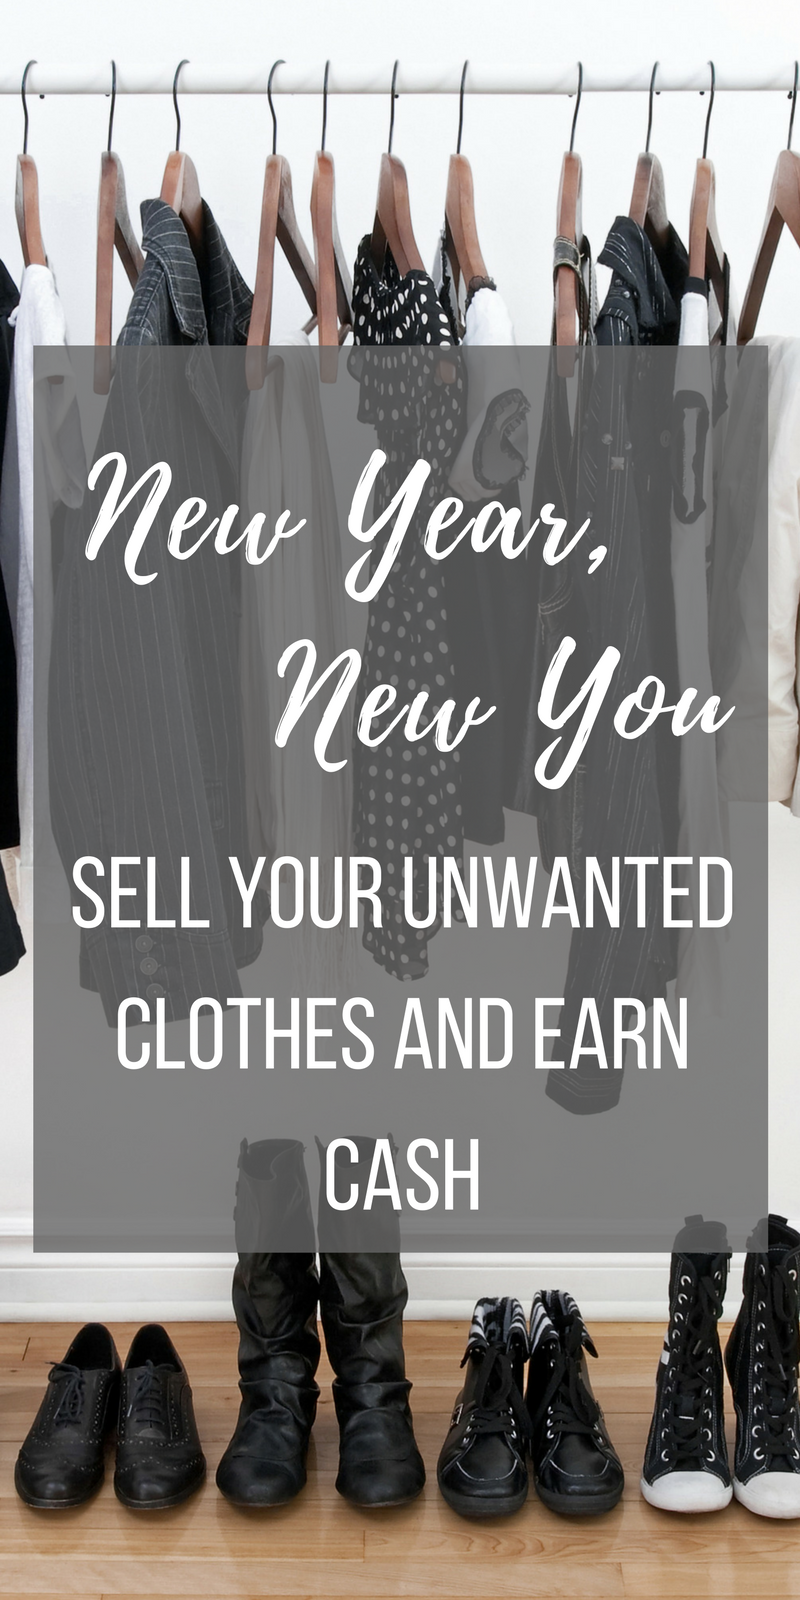 Make up to 5000 selling your unwanted clothes! Earn money